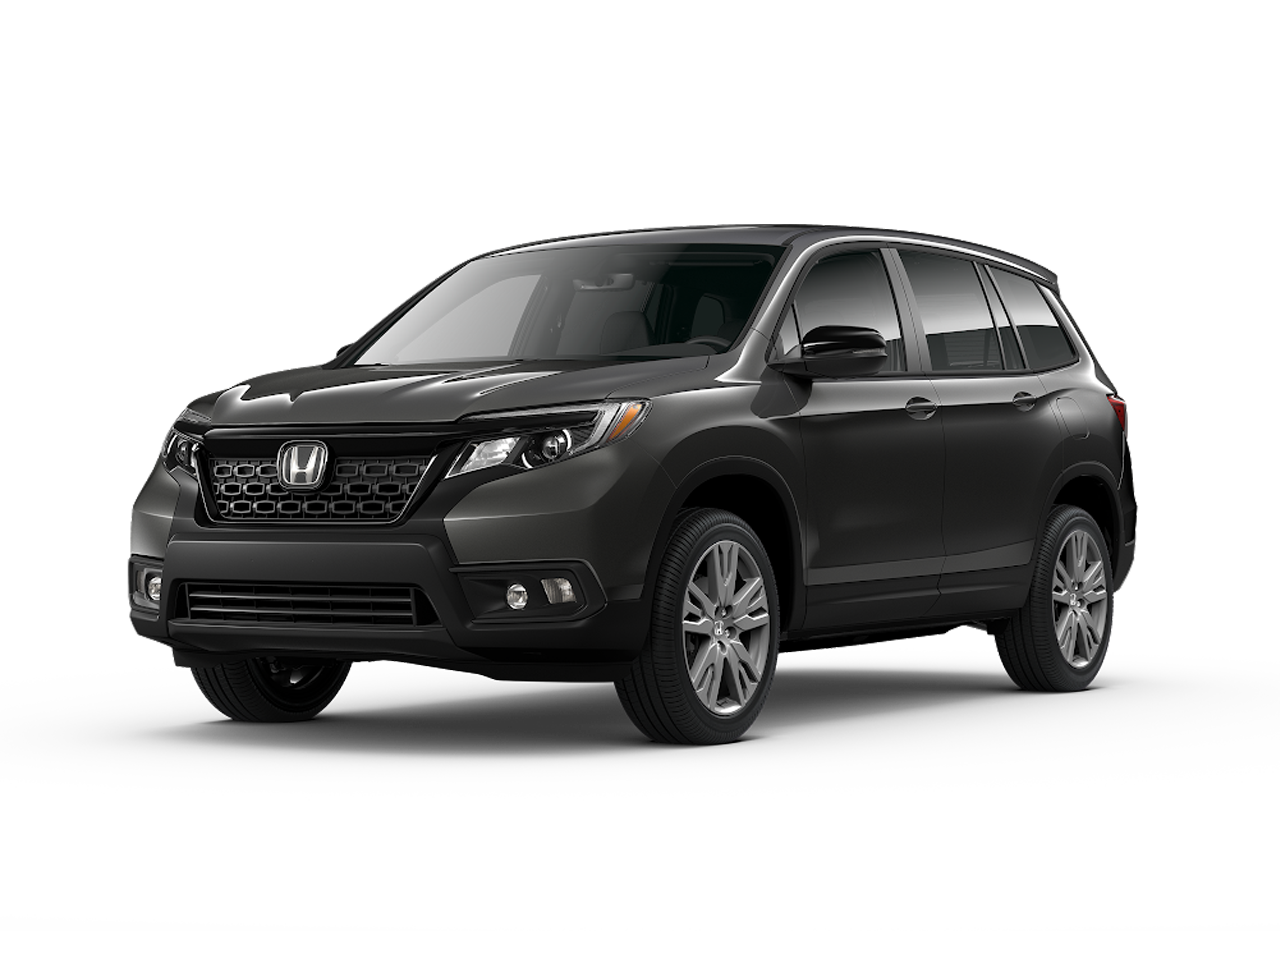 2019 honda passport dealer in los angeles